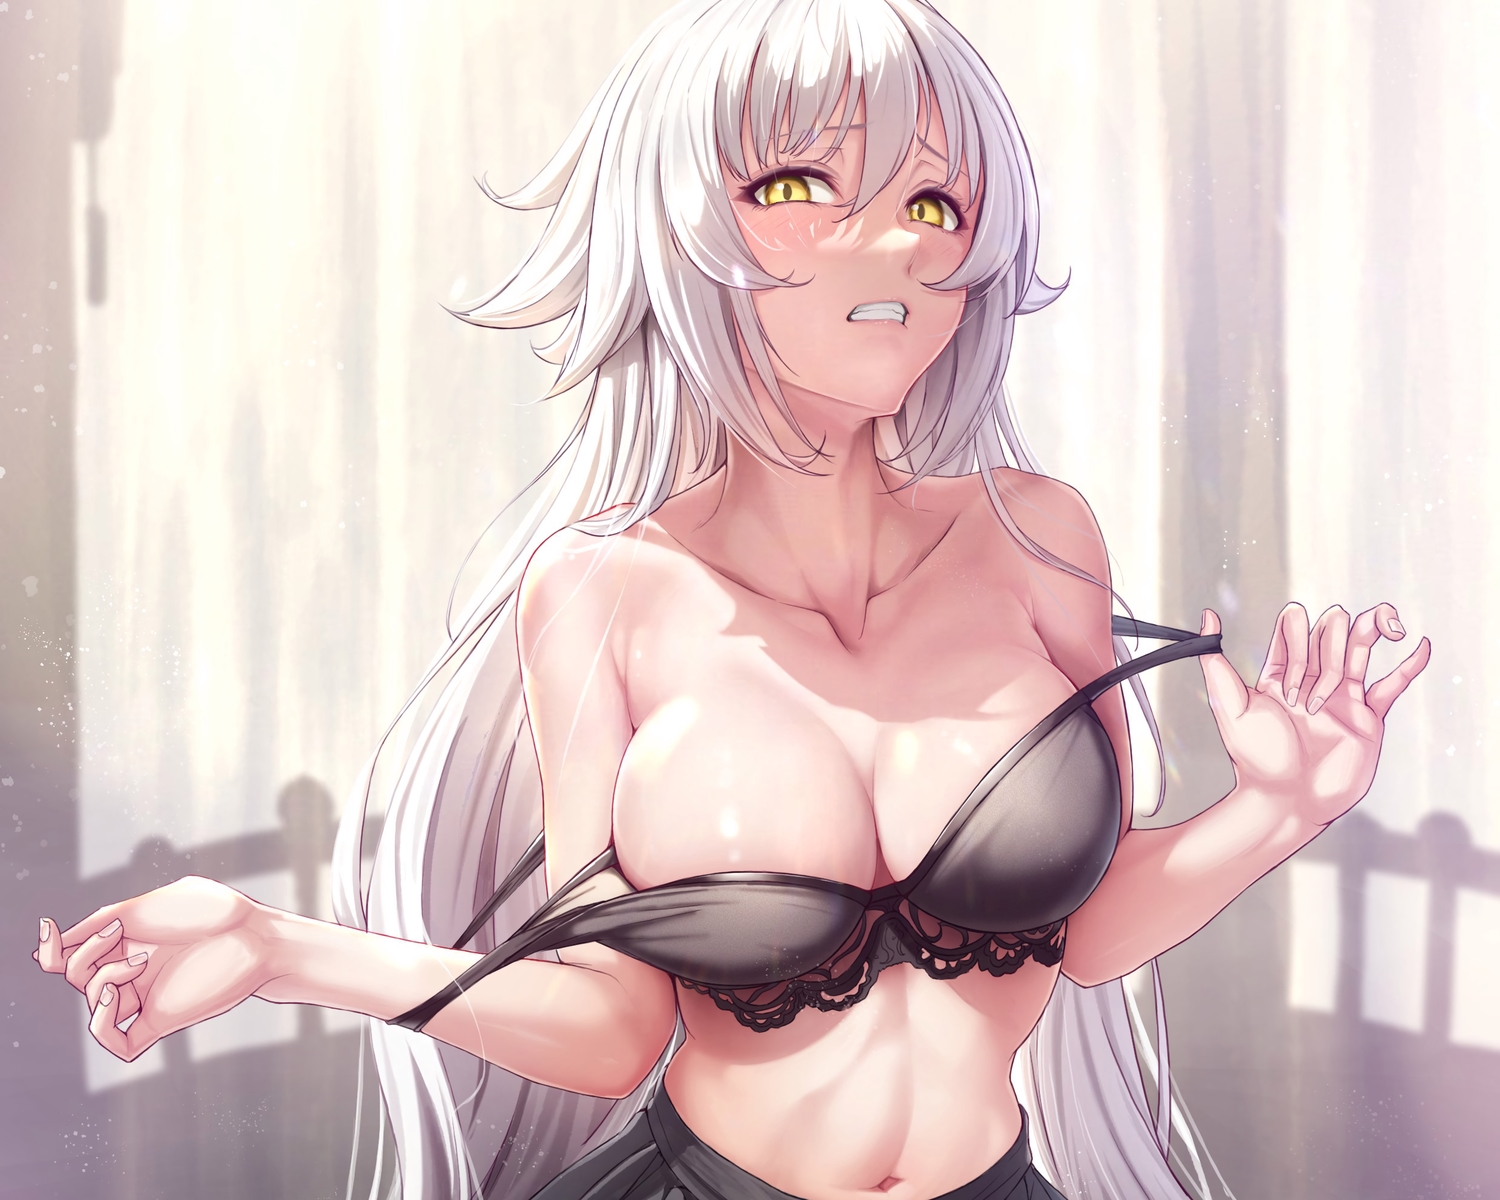 bra breasts cleavage cropped fate/grand_order fate_(series) happymonk jeanne_d'arc_(fate) long_hair underwear white_hair yellow_eyes